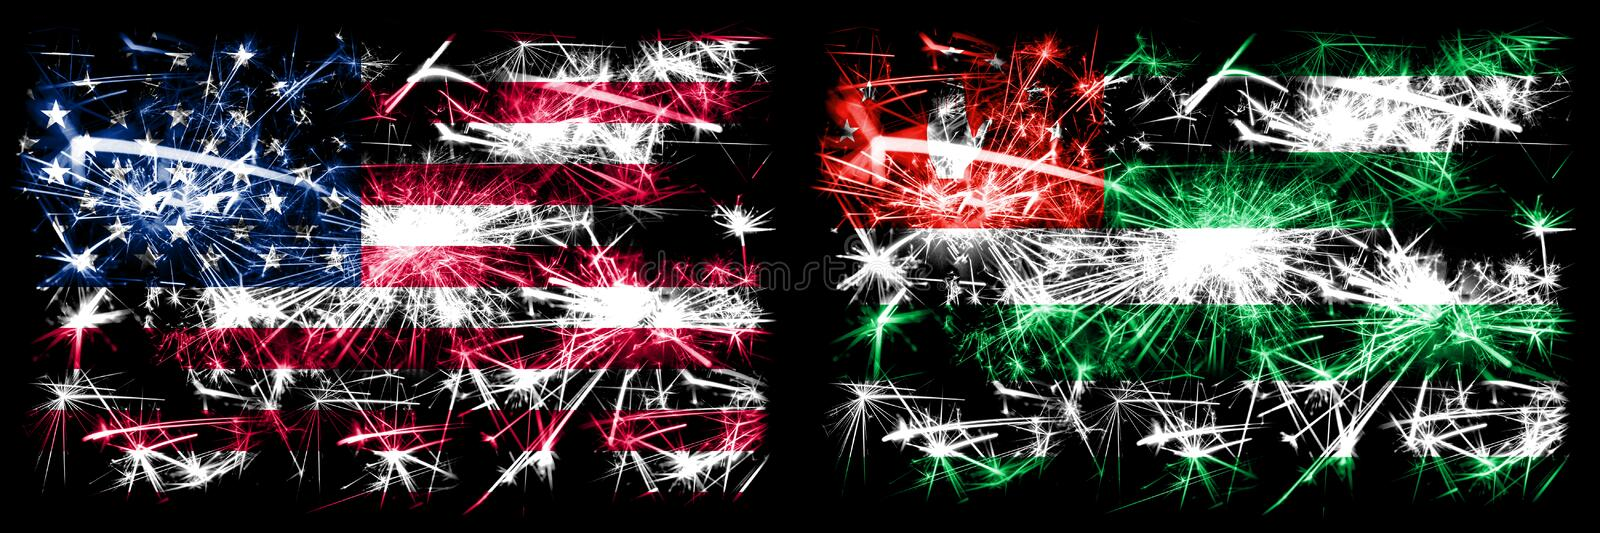 United States of America, USA vs Abkhazia, Abkhazian New Year celebration sparkling fireworks flags concept background. Combination of two abstract states stock images